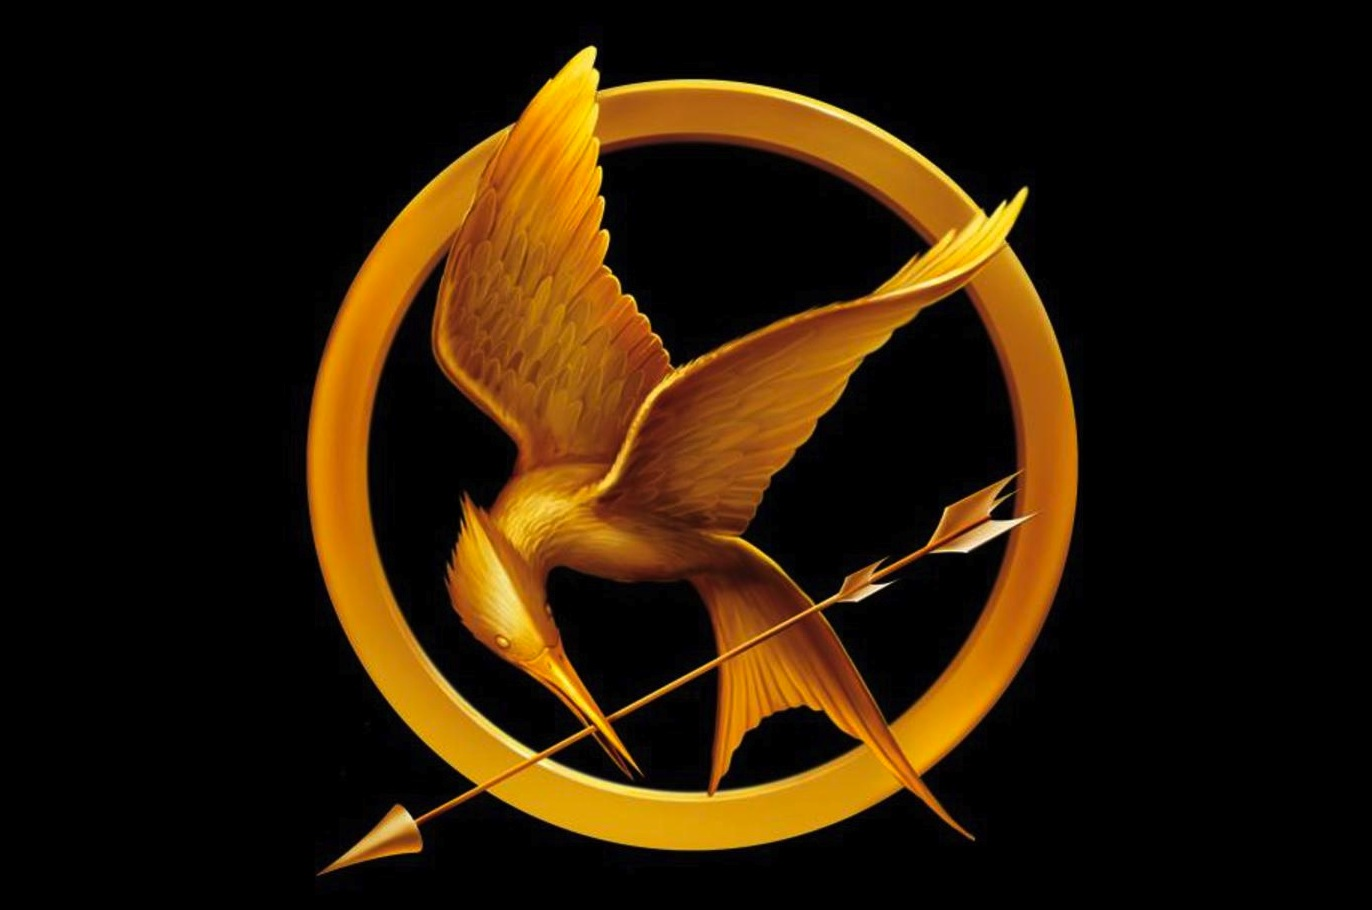 010 Essay Example The Hunger Games Mockingjay Pin 1920x1200 Symbol11 Book Imposing Review Full